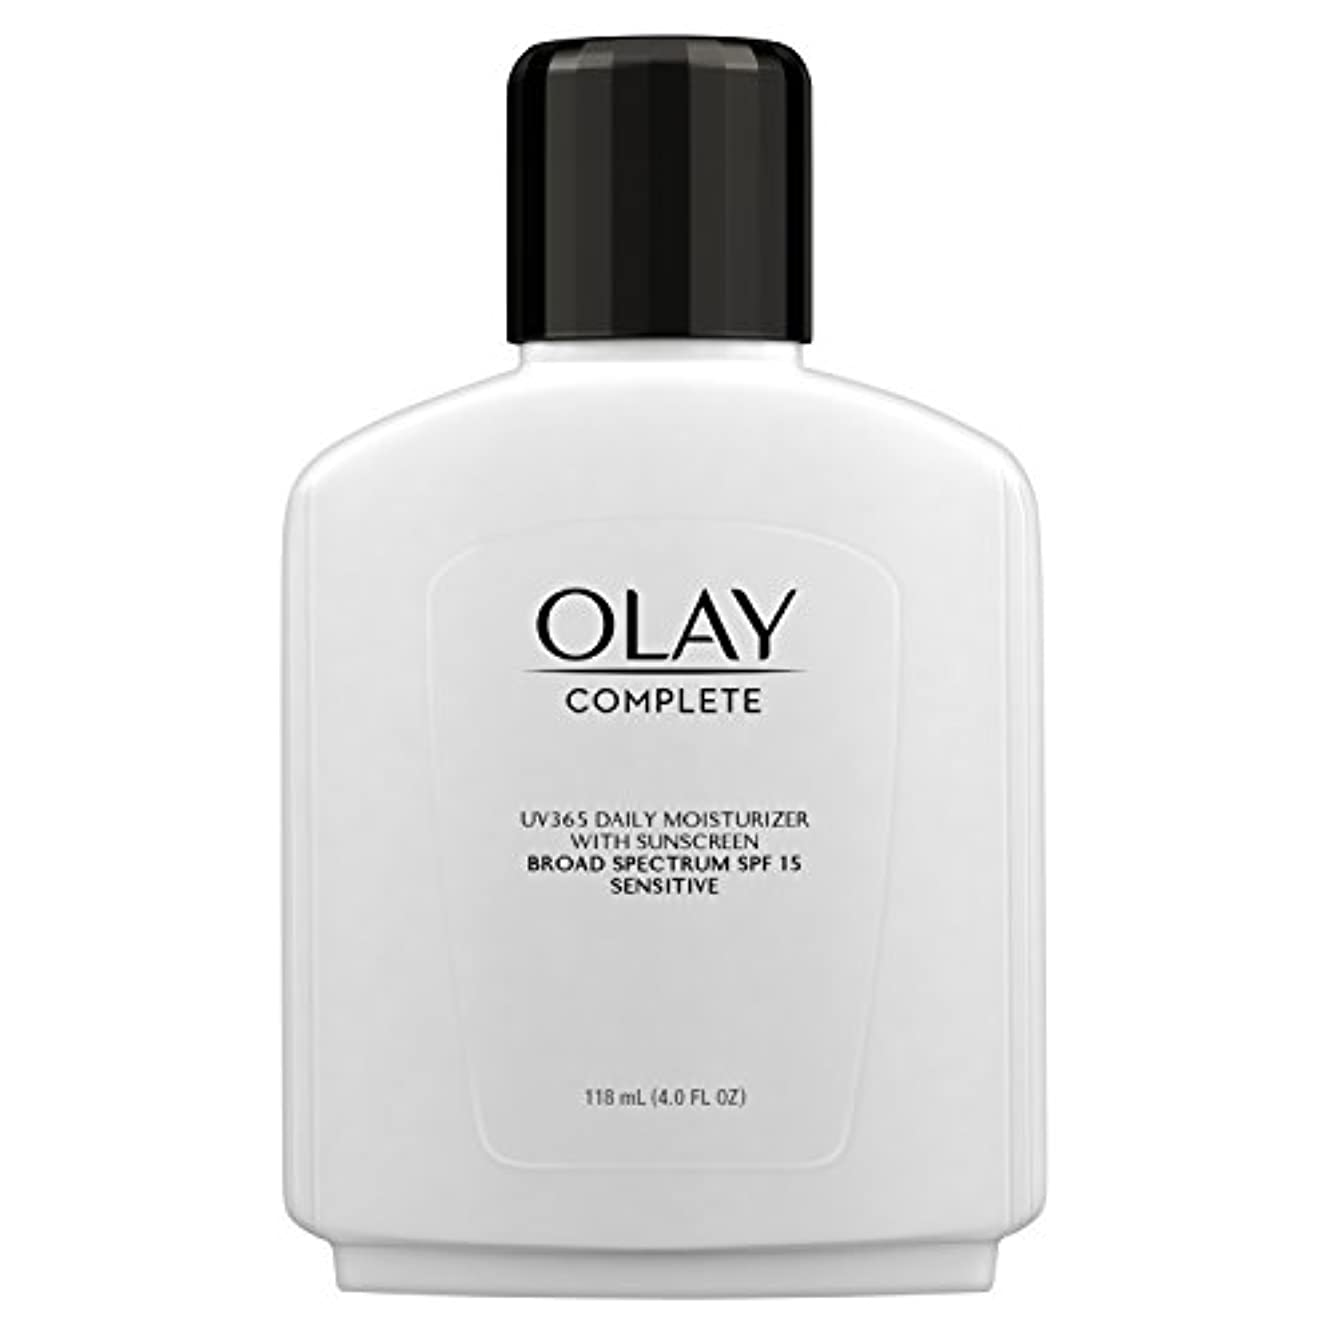 朝の体操をする健康的硬いOlay Complete All Day Moisture Lotion UV Defense SPF 15, Sensitive Skin, 4 fl oz (118 ml) (1 pack) (並行輸入品)